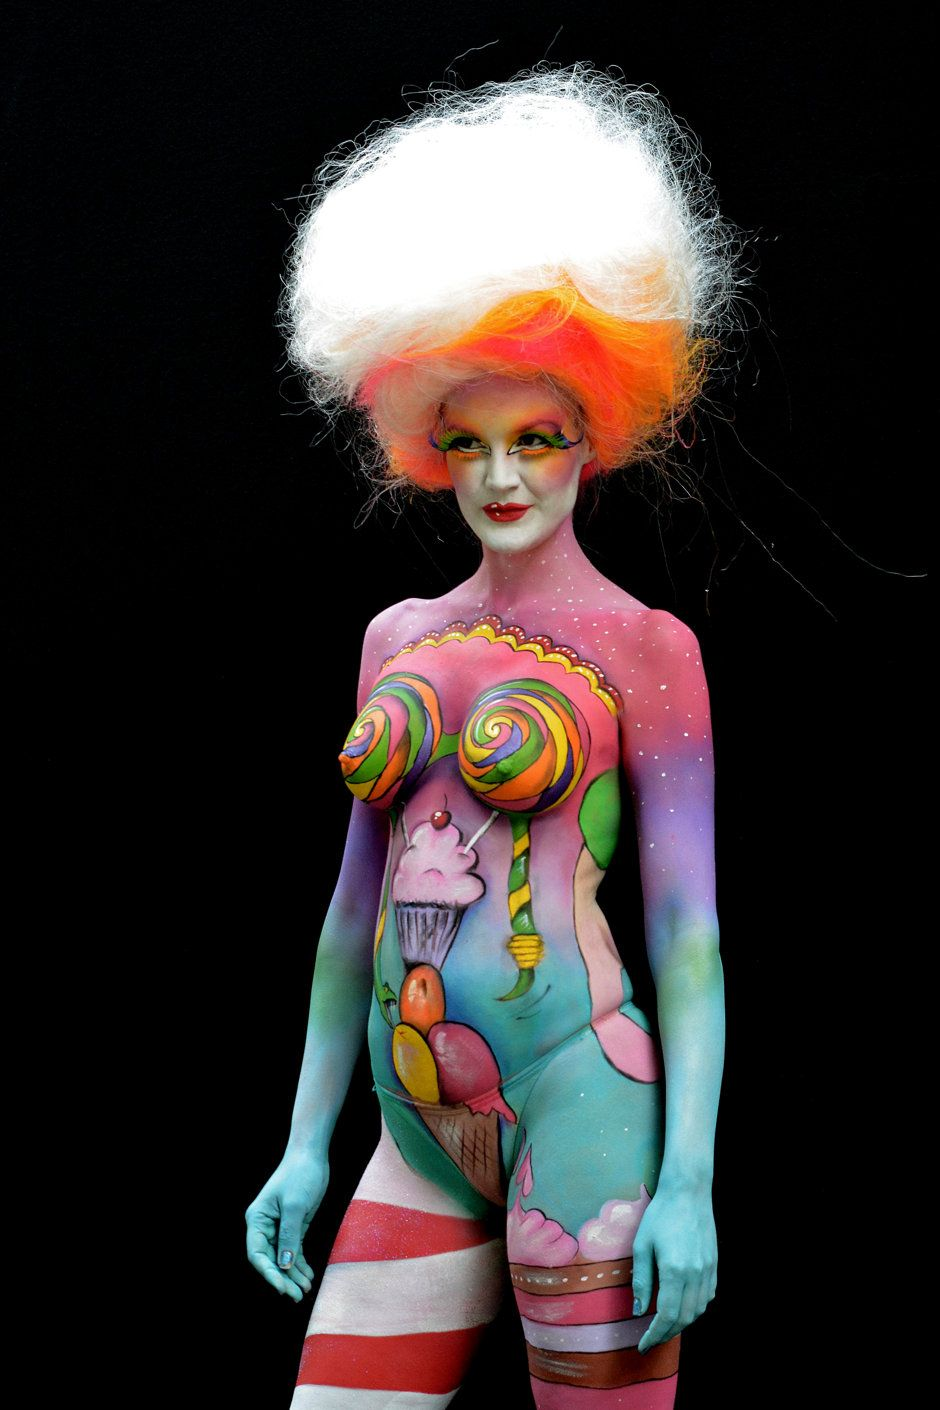 16th World Bodypainting Festival Face And Body Painting Art Bodypaint Board World Bodypainting Festival Body Painting Body Art